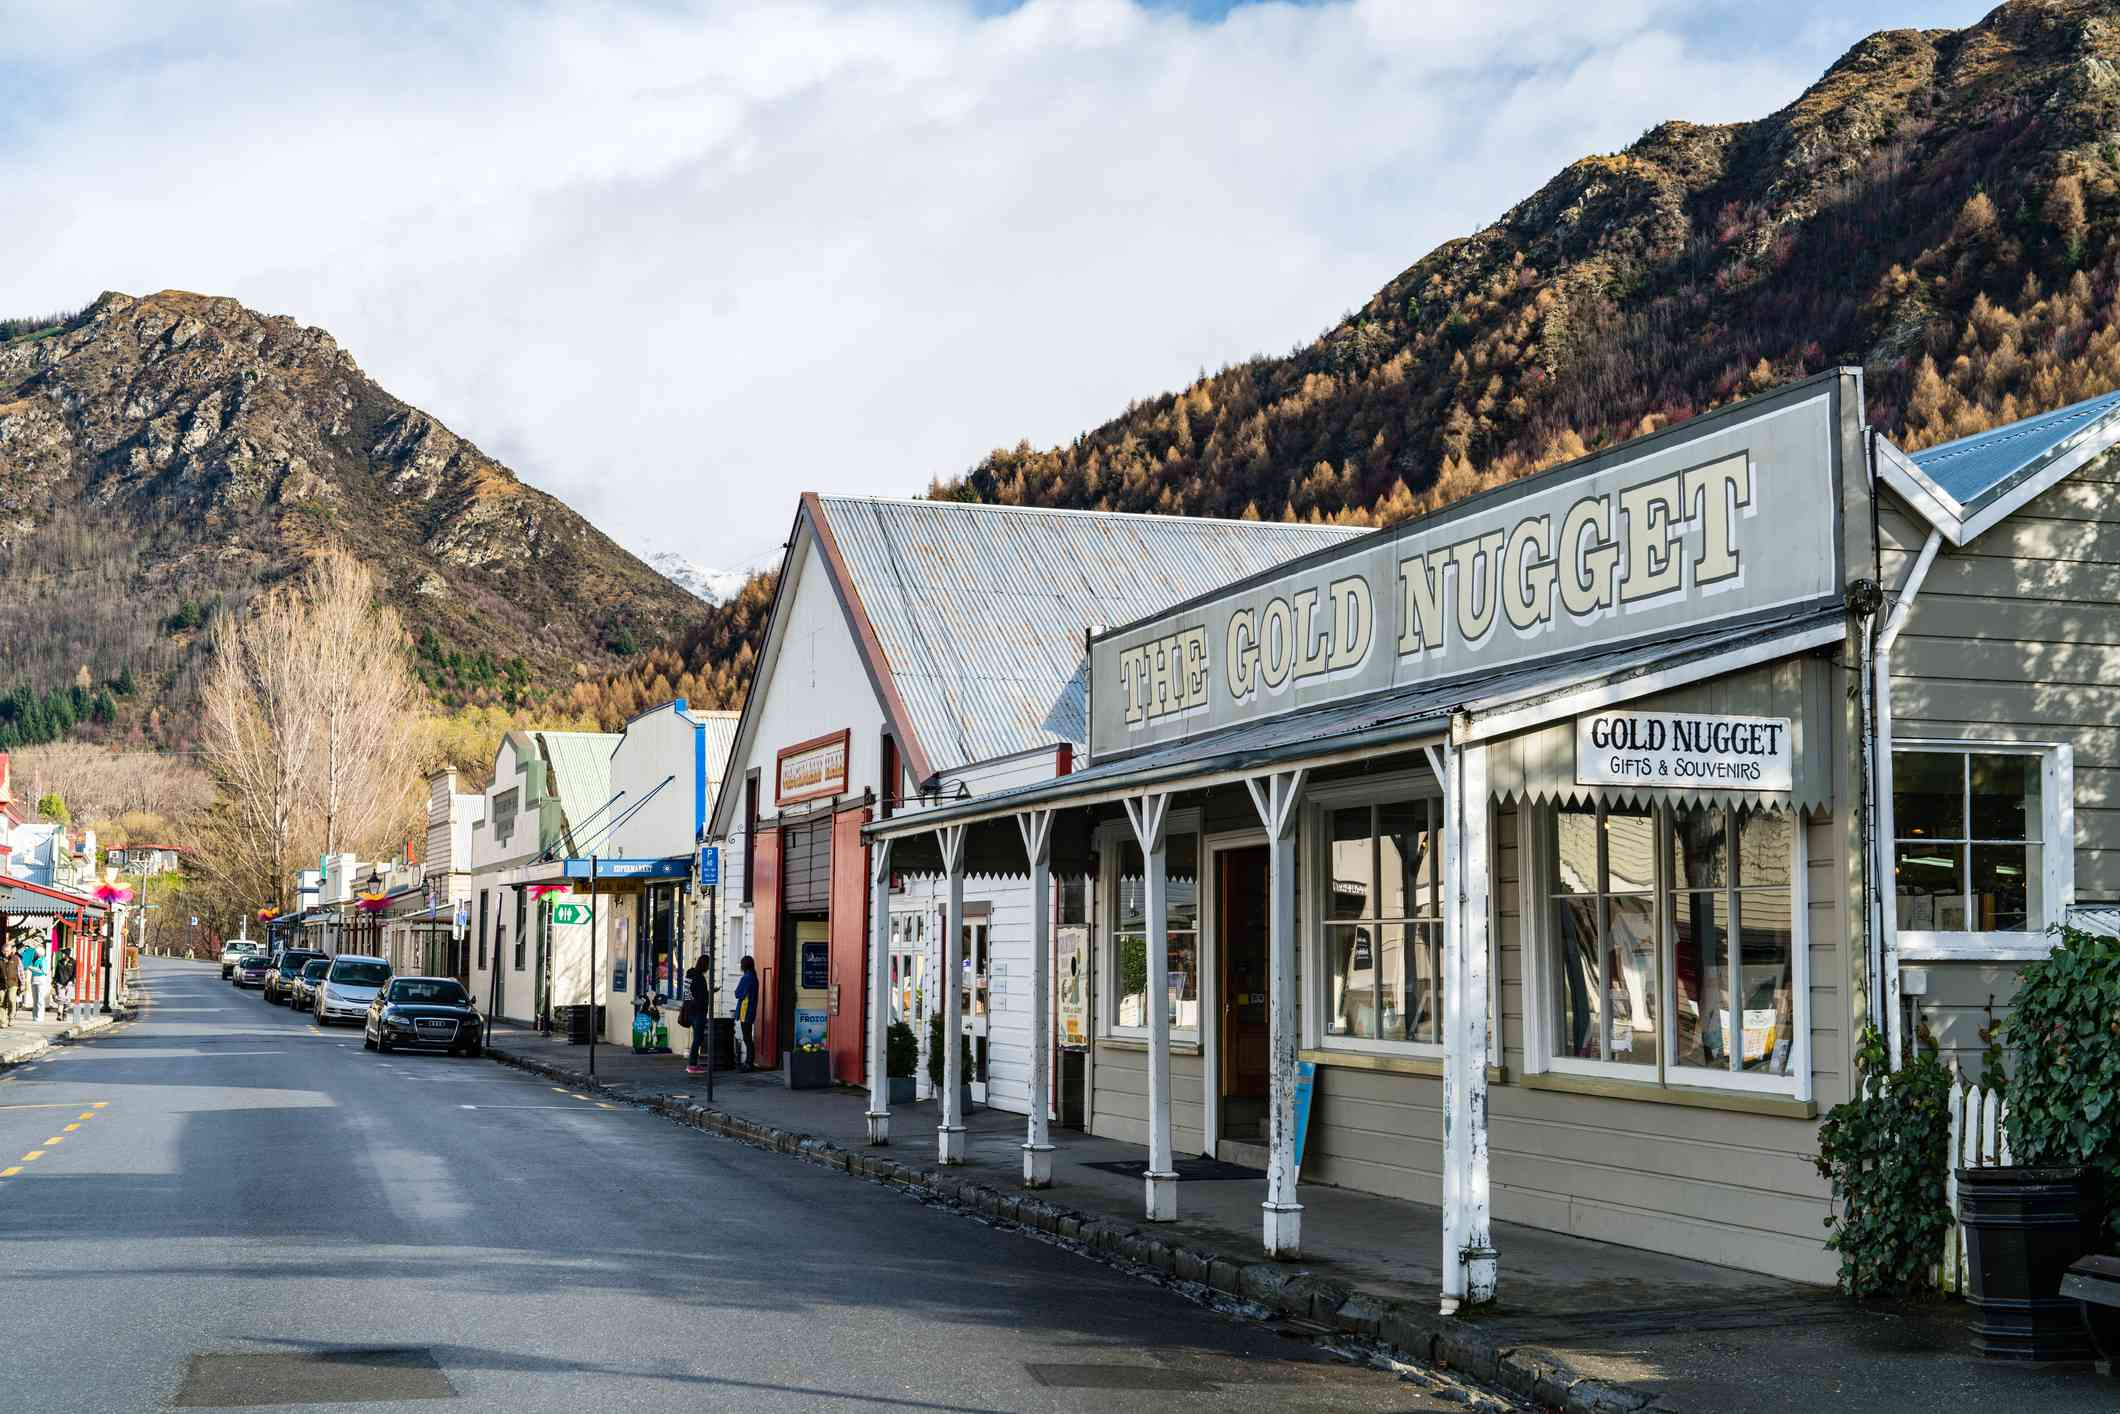 row of shops on a street through a town with mountains in background